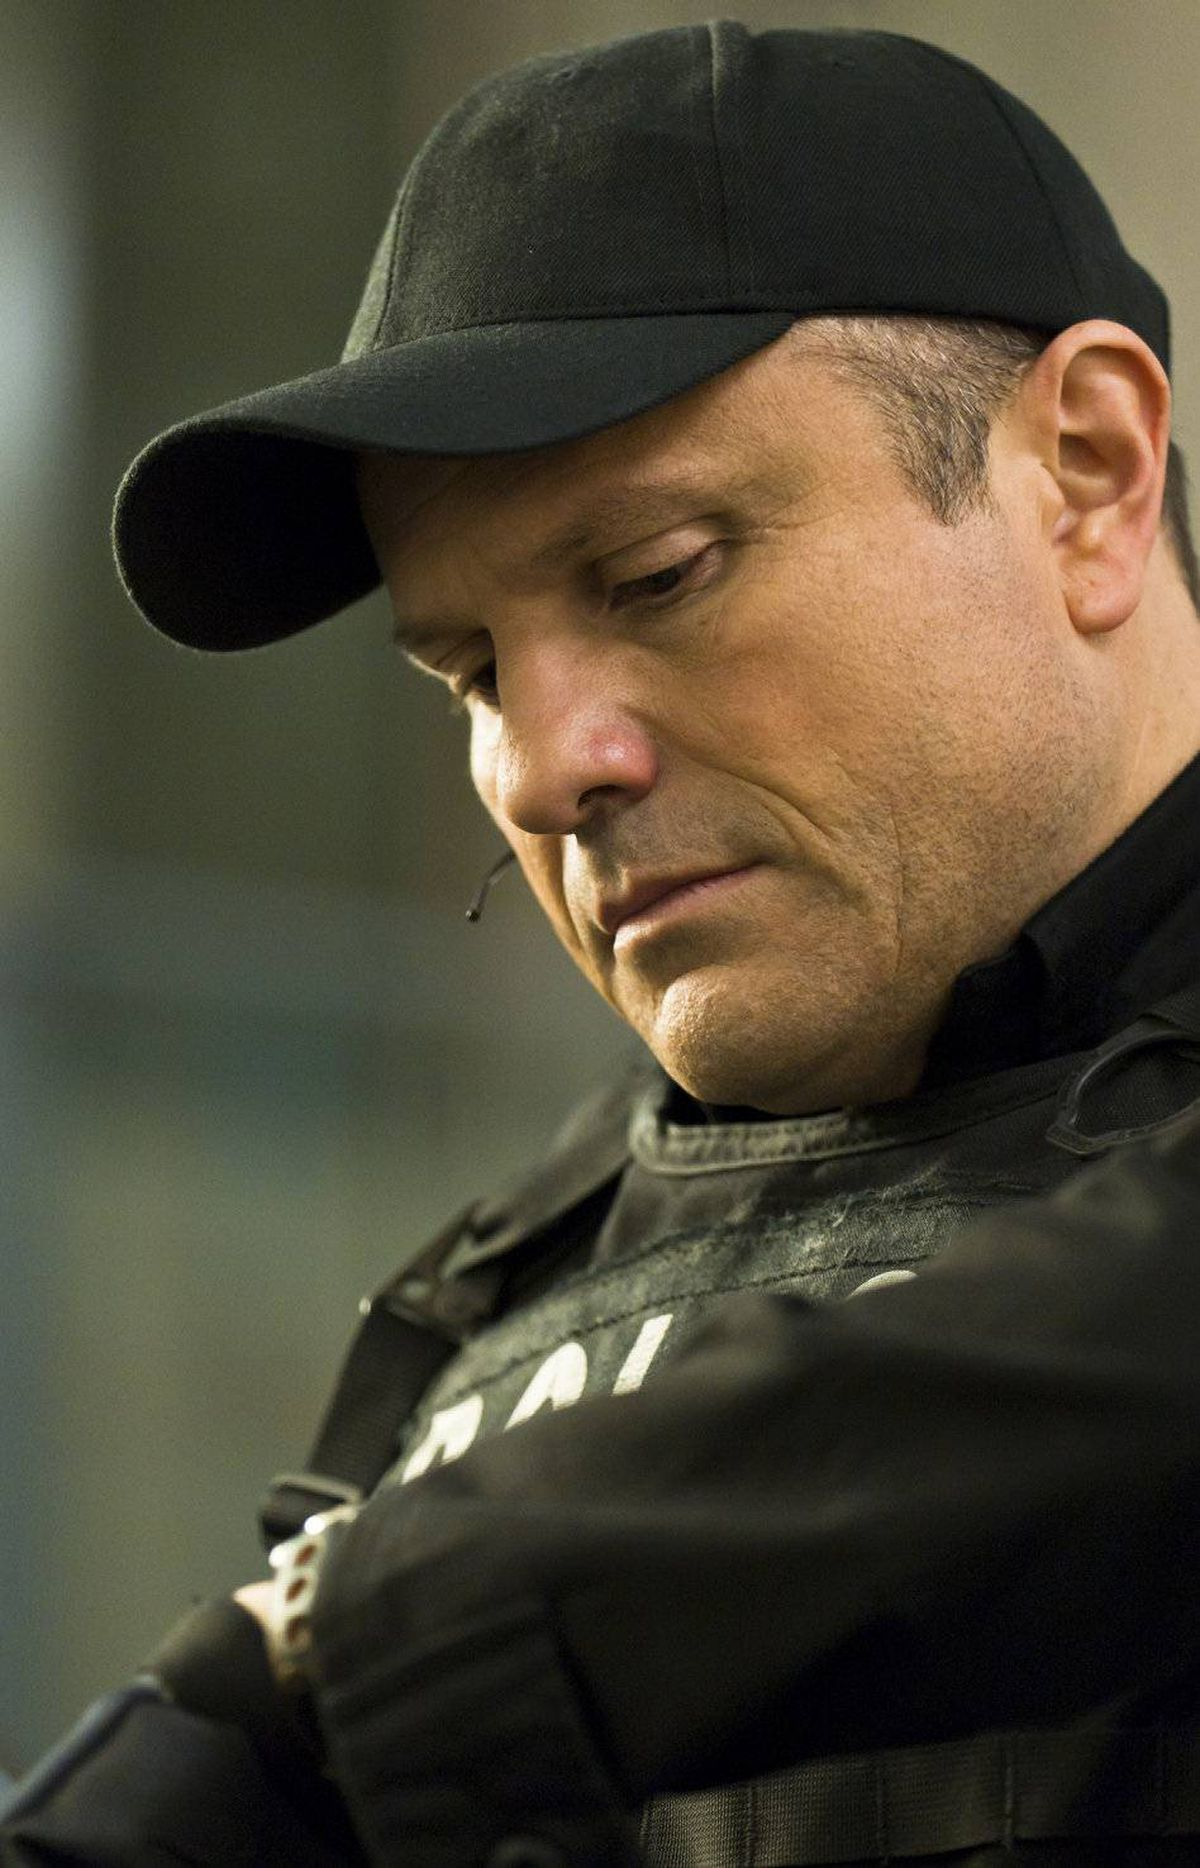 DRAMA Flashpoint CTV, CBS, 8 p.m. Back for a fourth season tonight with all-new episodes, Canada's favourite cop show returns with a nailbiter. At the same time that Strategic Response Unit member Ed Lane is being rushed to the hospital after being shot by a drug dealer's gunman, Ed's wife is experiencing difficulties in delivering their baby. Acting veteran Victor Garber reprises his role of Dr. Toth, a psychologist determined to disband the SRU's Team One.